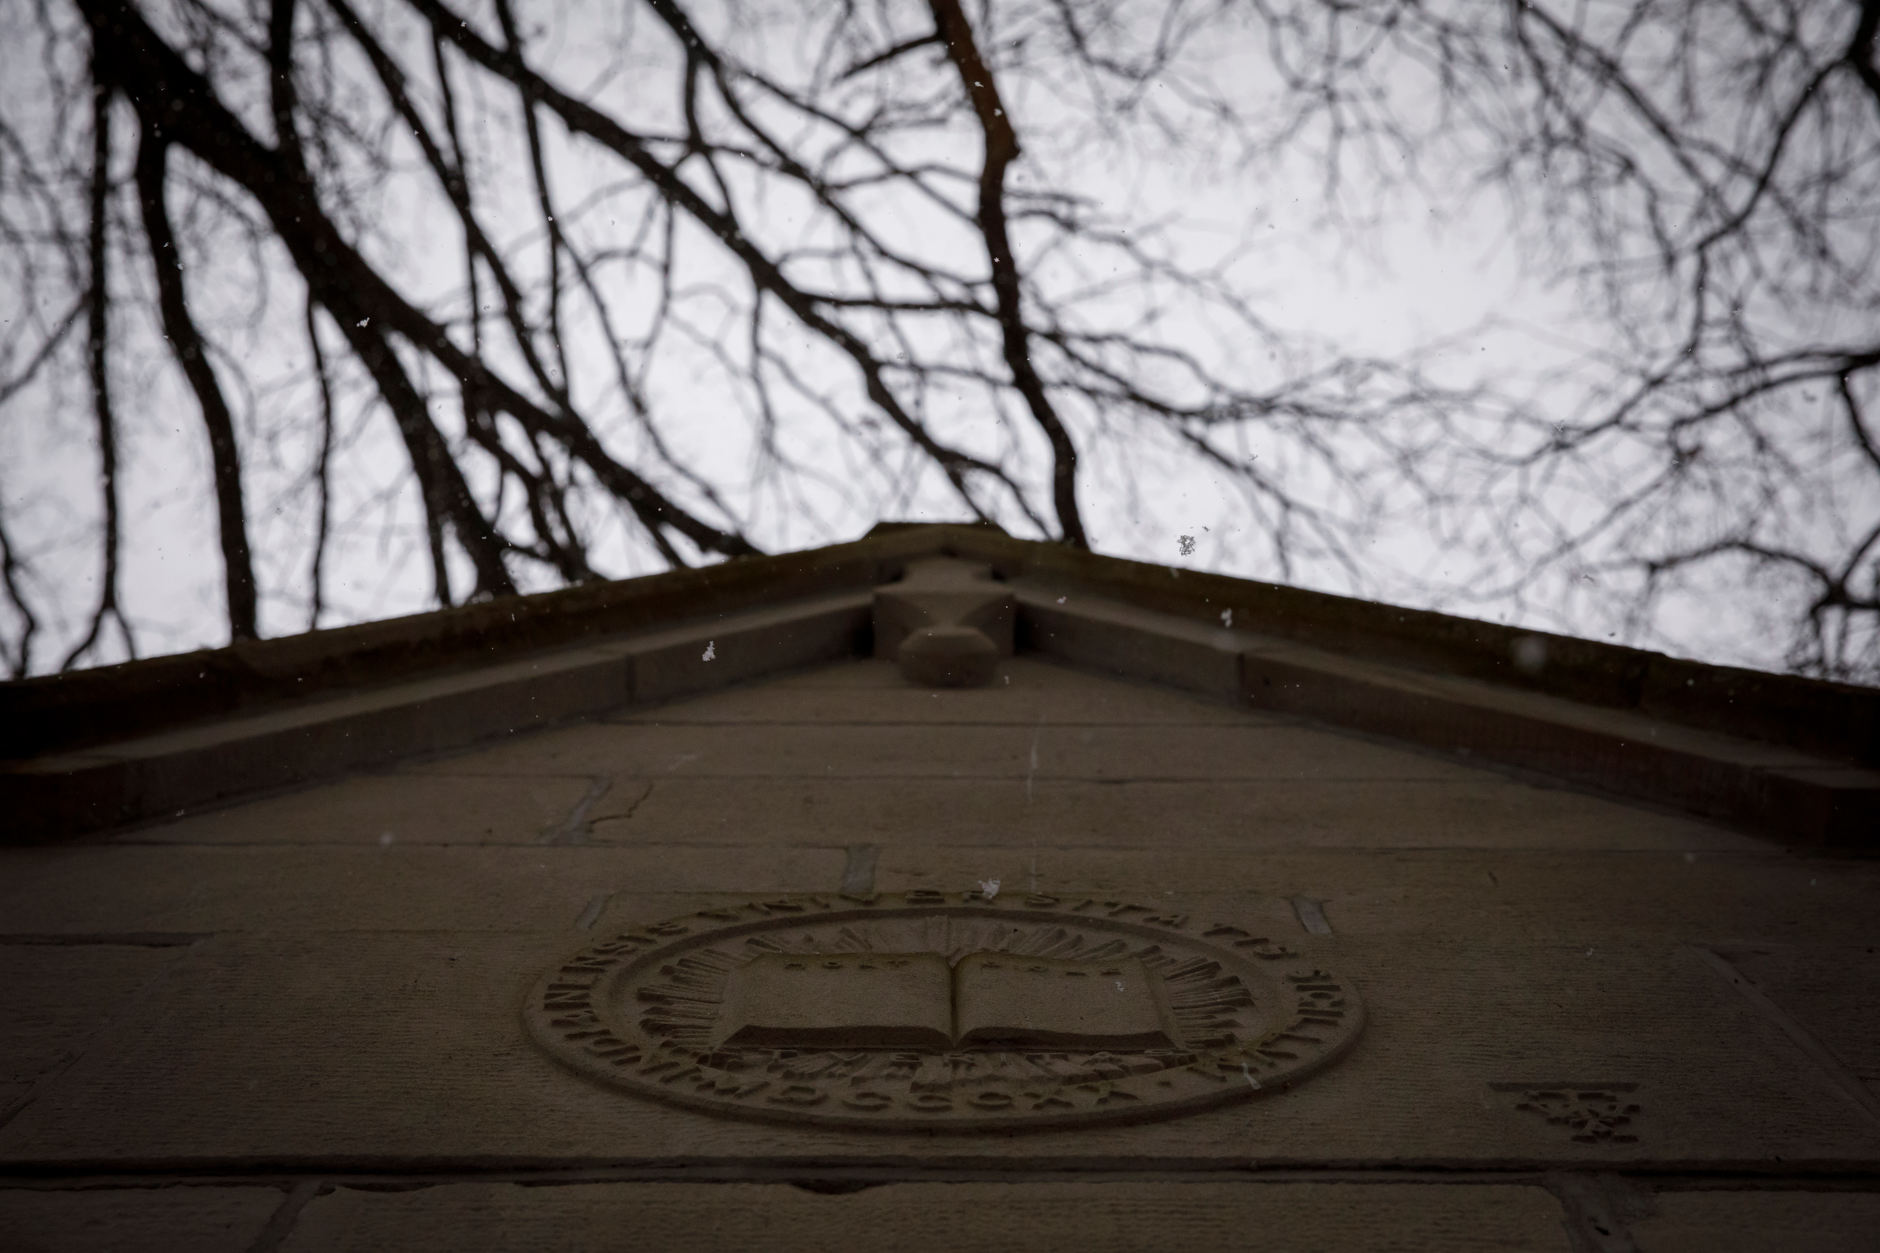 Snowflakes fall from the roof of the Rose Well House in the Old Crescent at IU Bloomington on Thursday, March 7, 2019. (James Brosher/Indiana University)